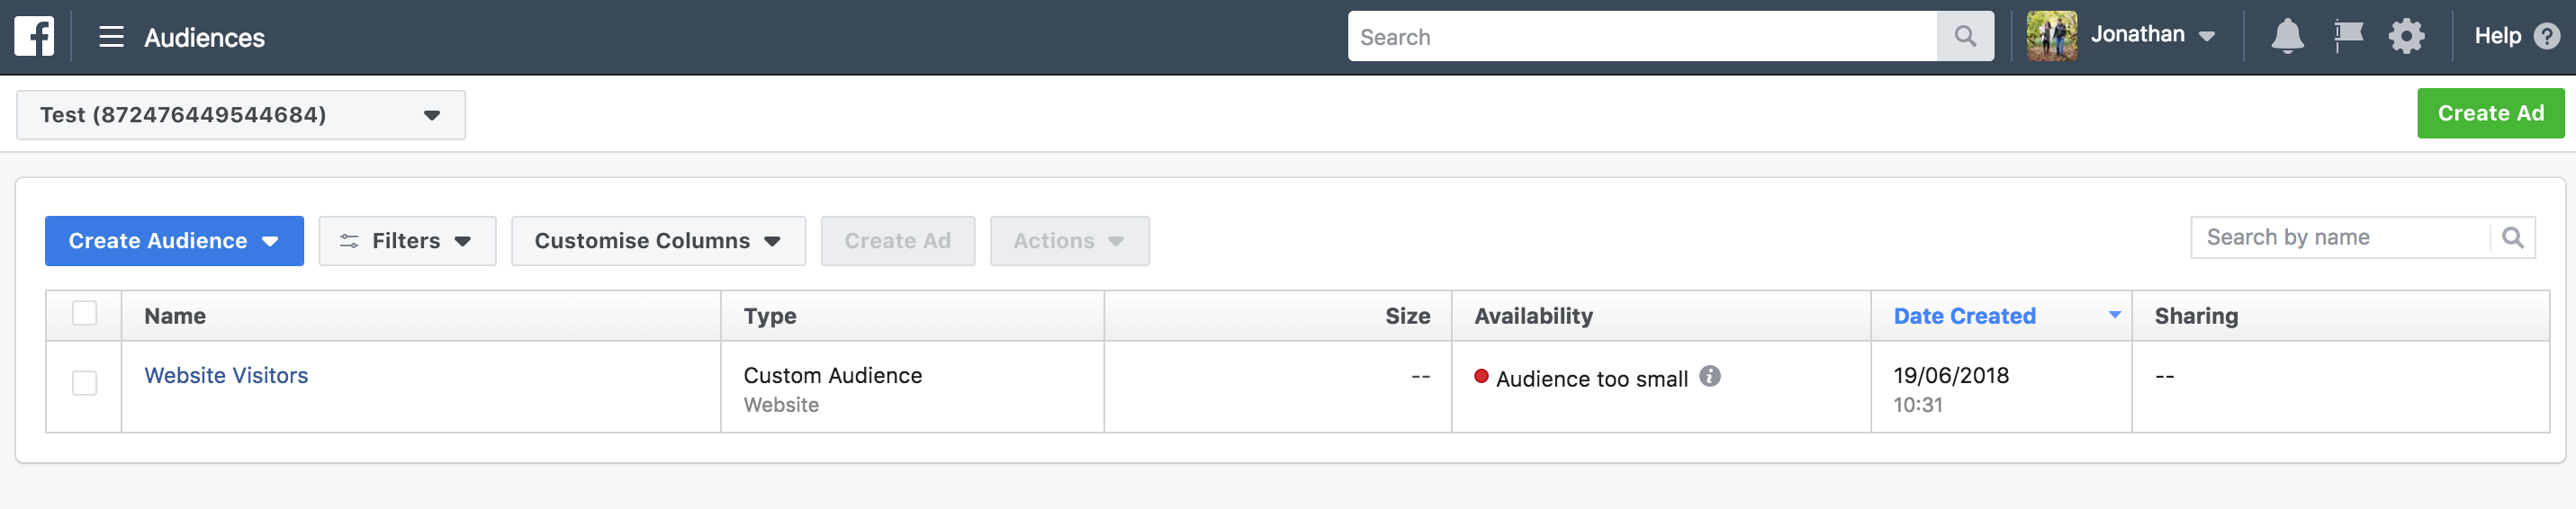 Manage Facebook ad audiences